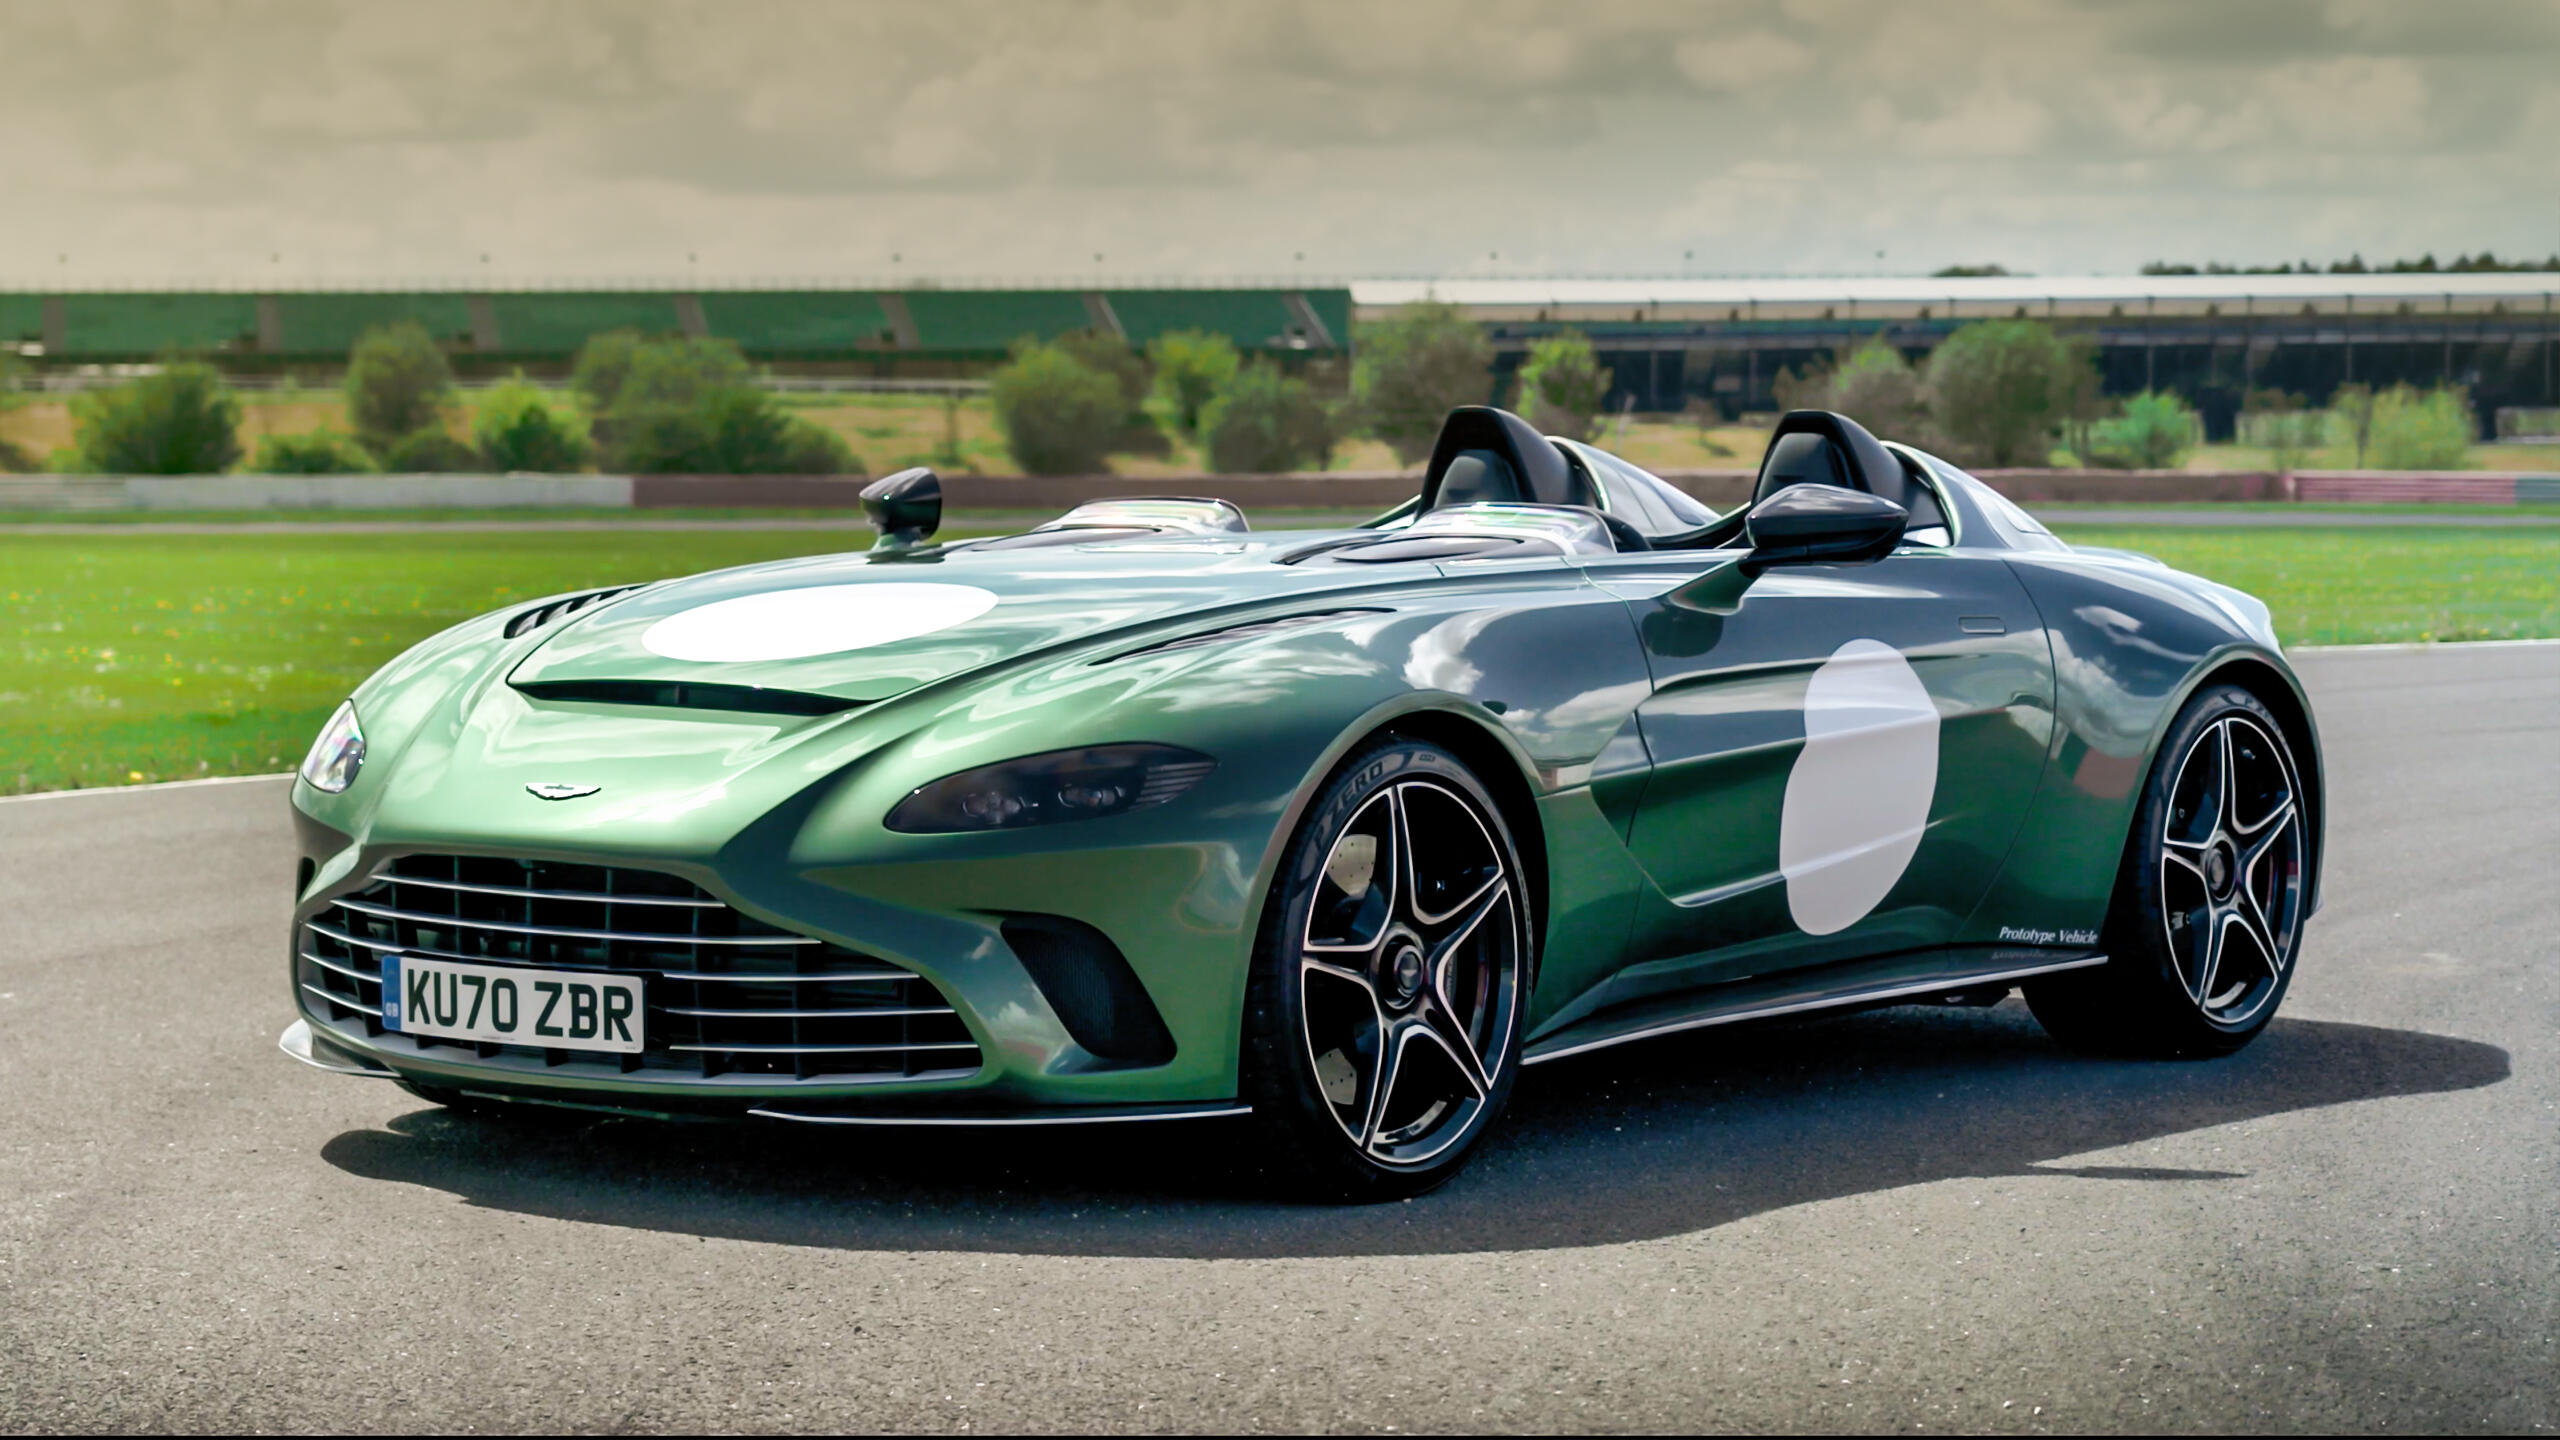 Video: The Aston Martin V12 Speedster is the coolest way to get flies in your face